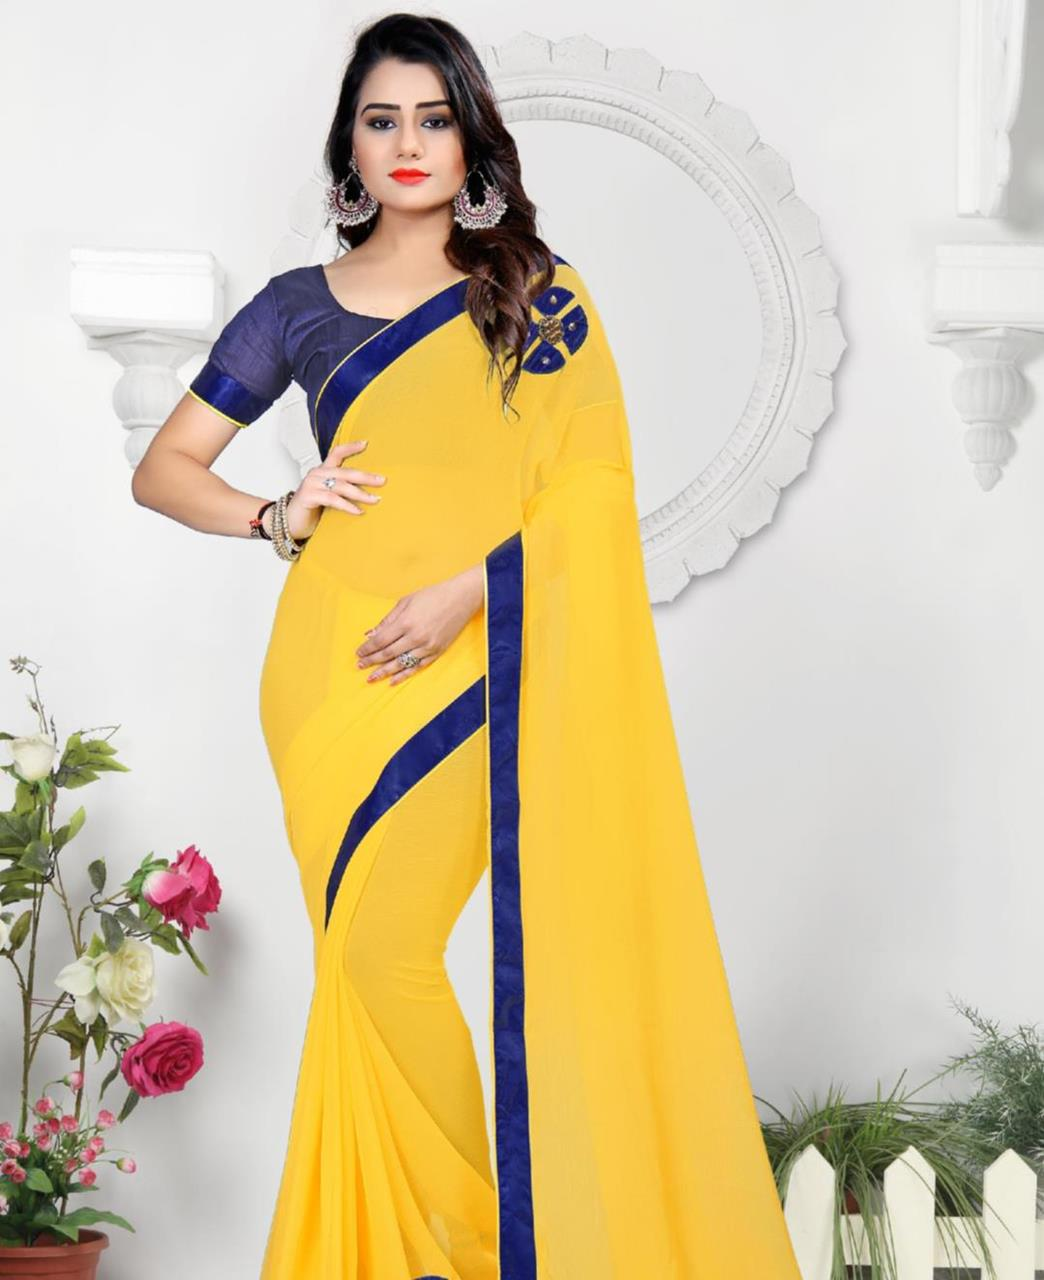 Lace Chiffon Saree (Sari) in Yellow